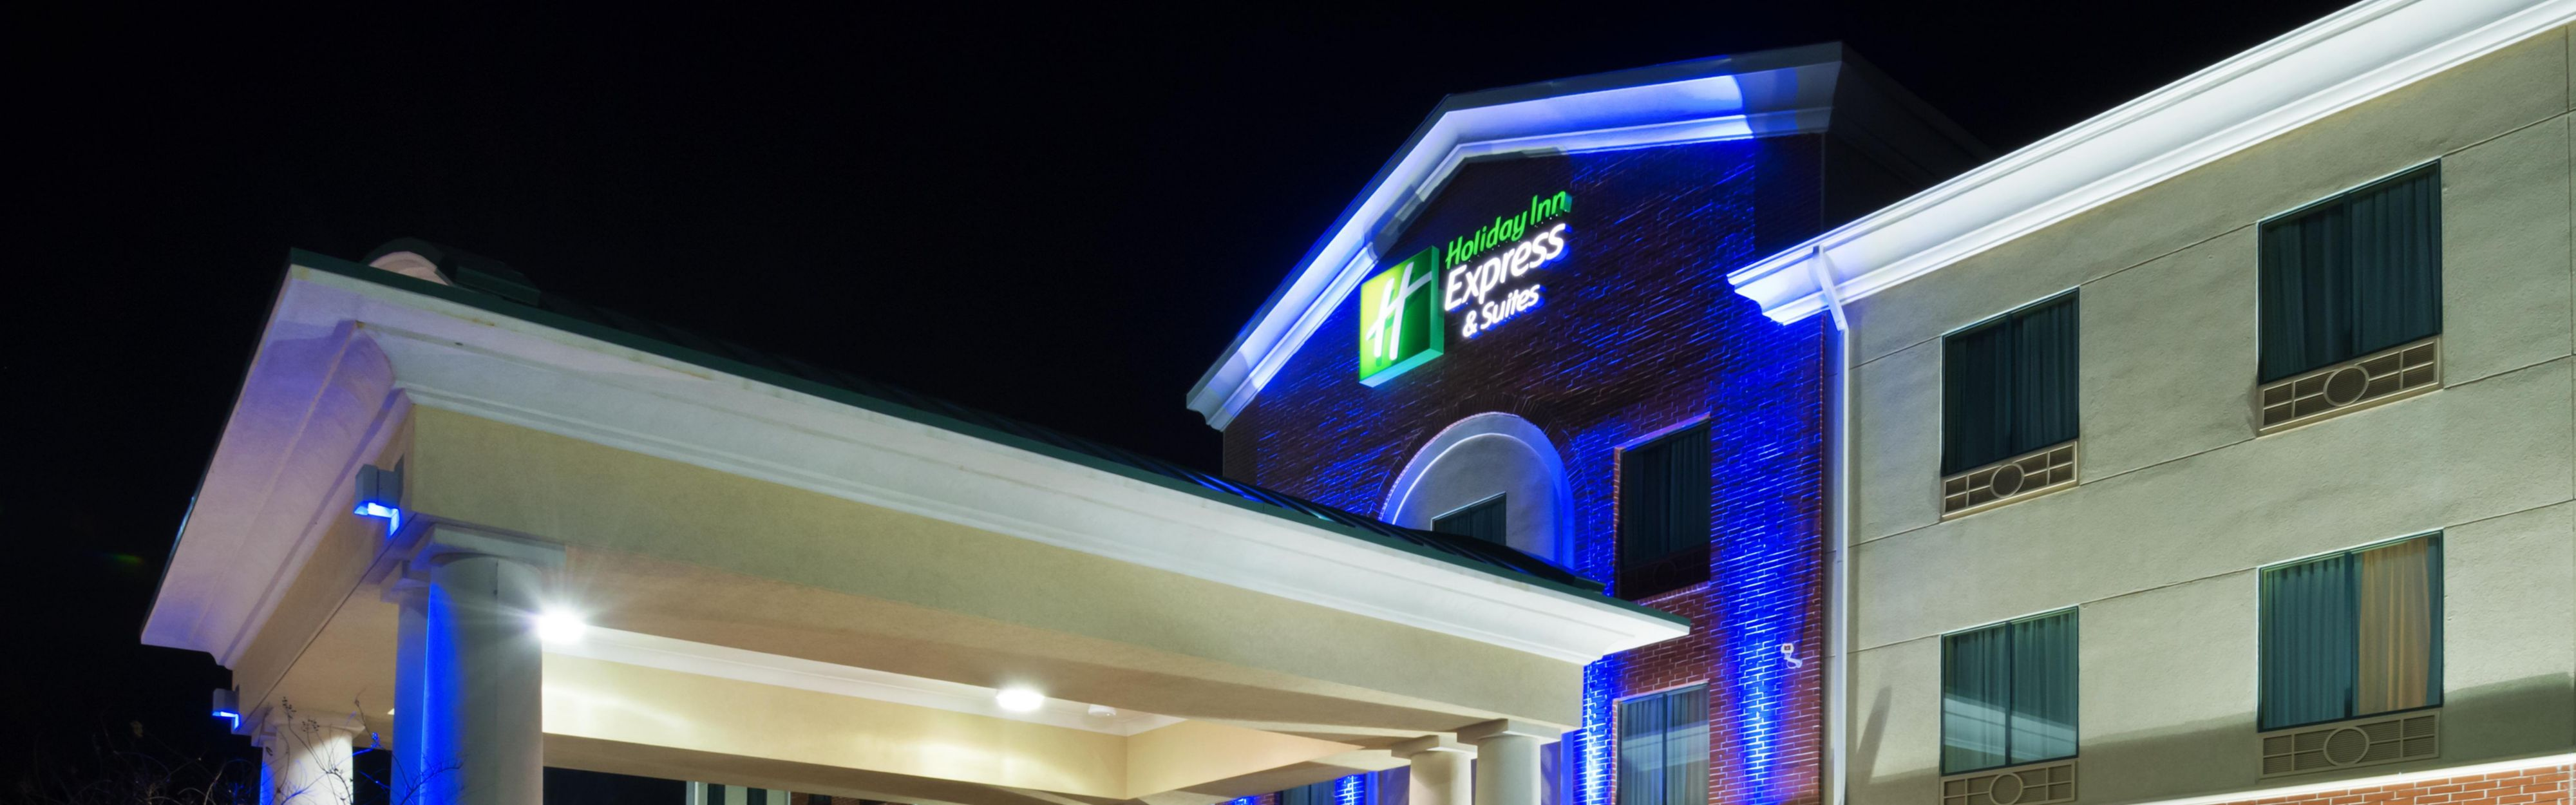 Holiday Inn Express & Suites Little Rock-West image 0